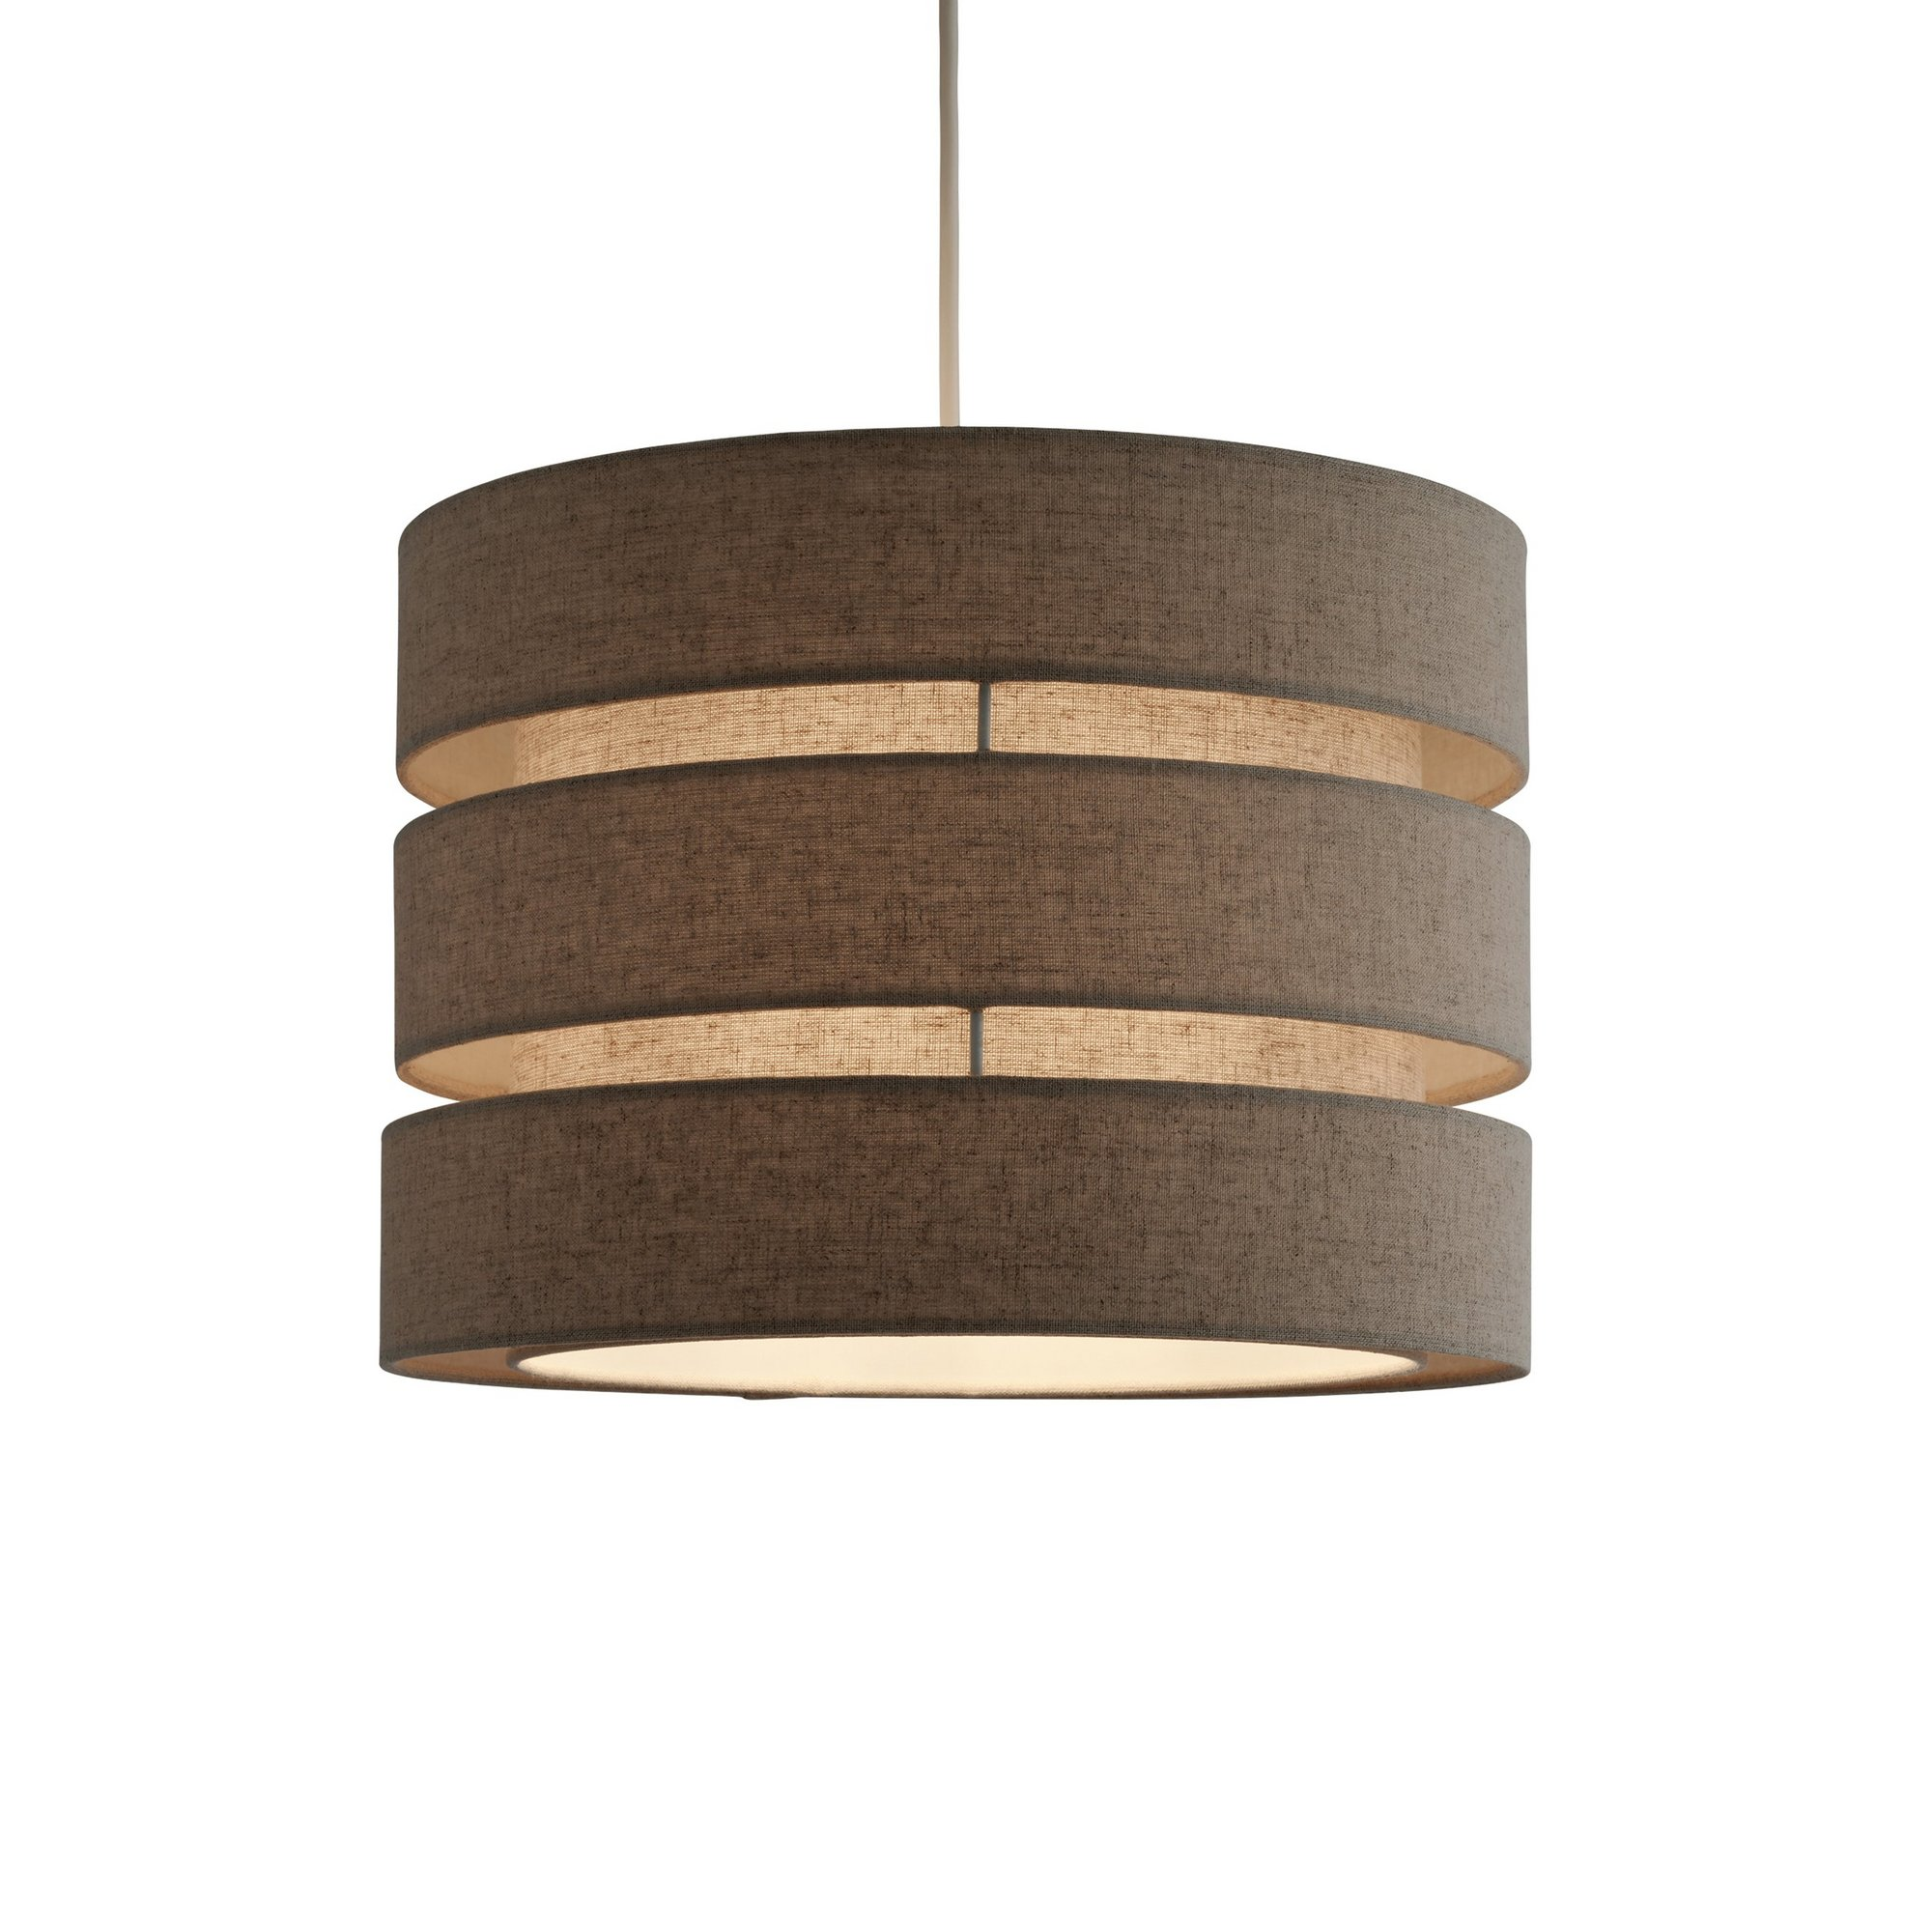 Image of 3 Layer Easy Fit Light Shade